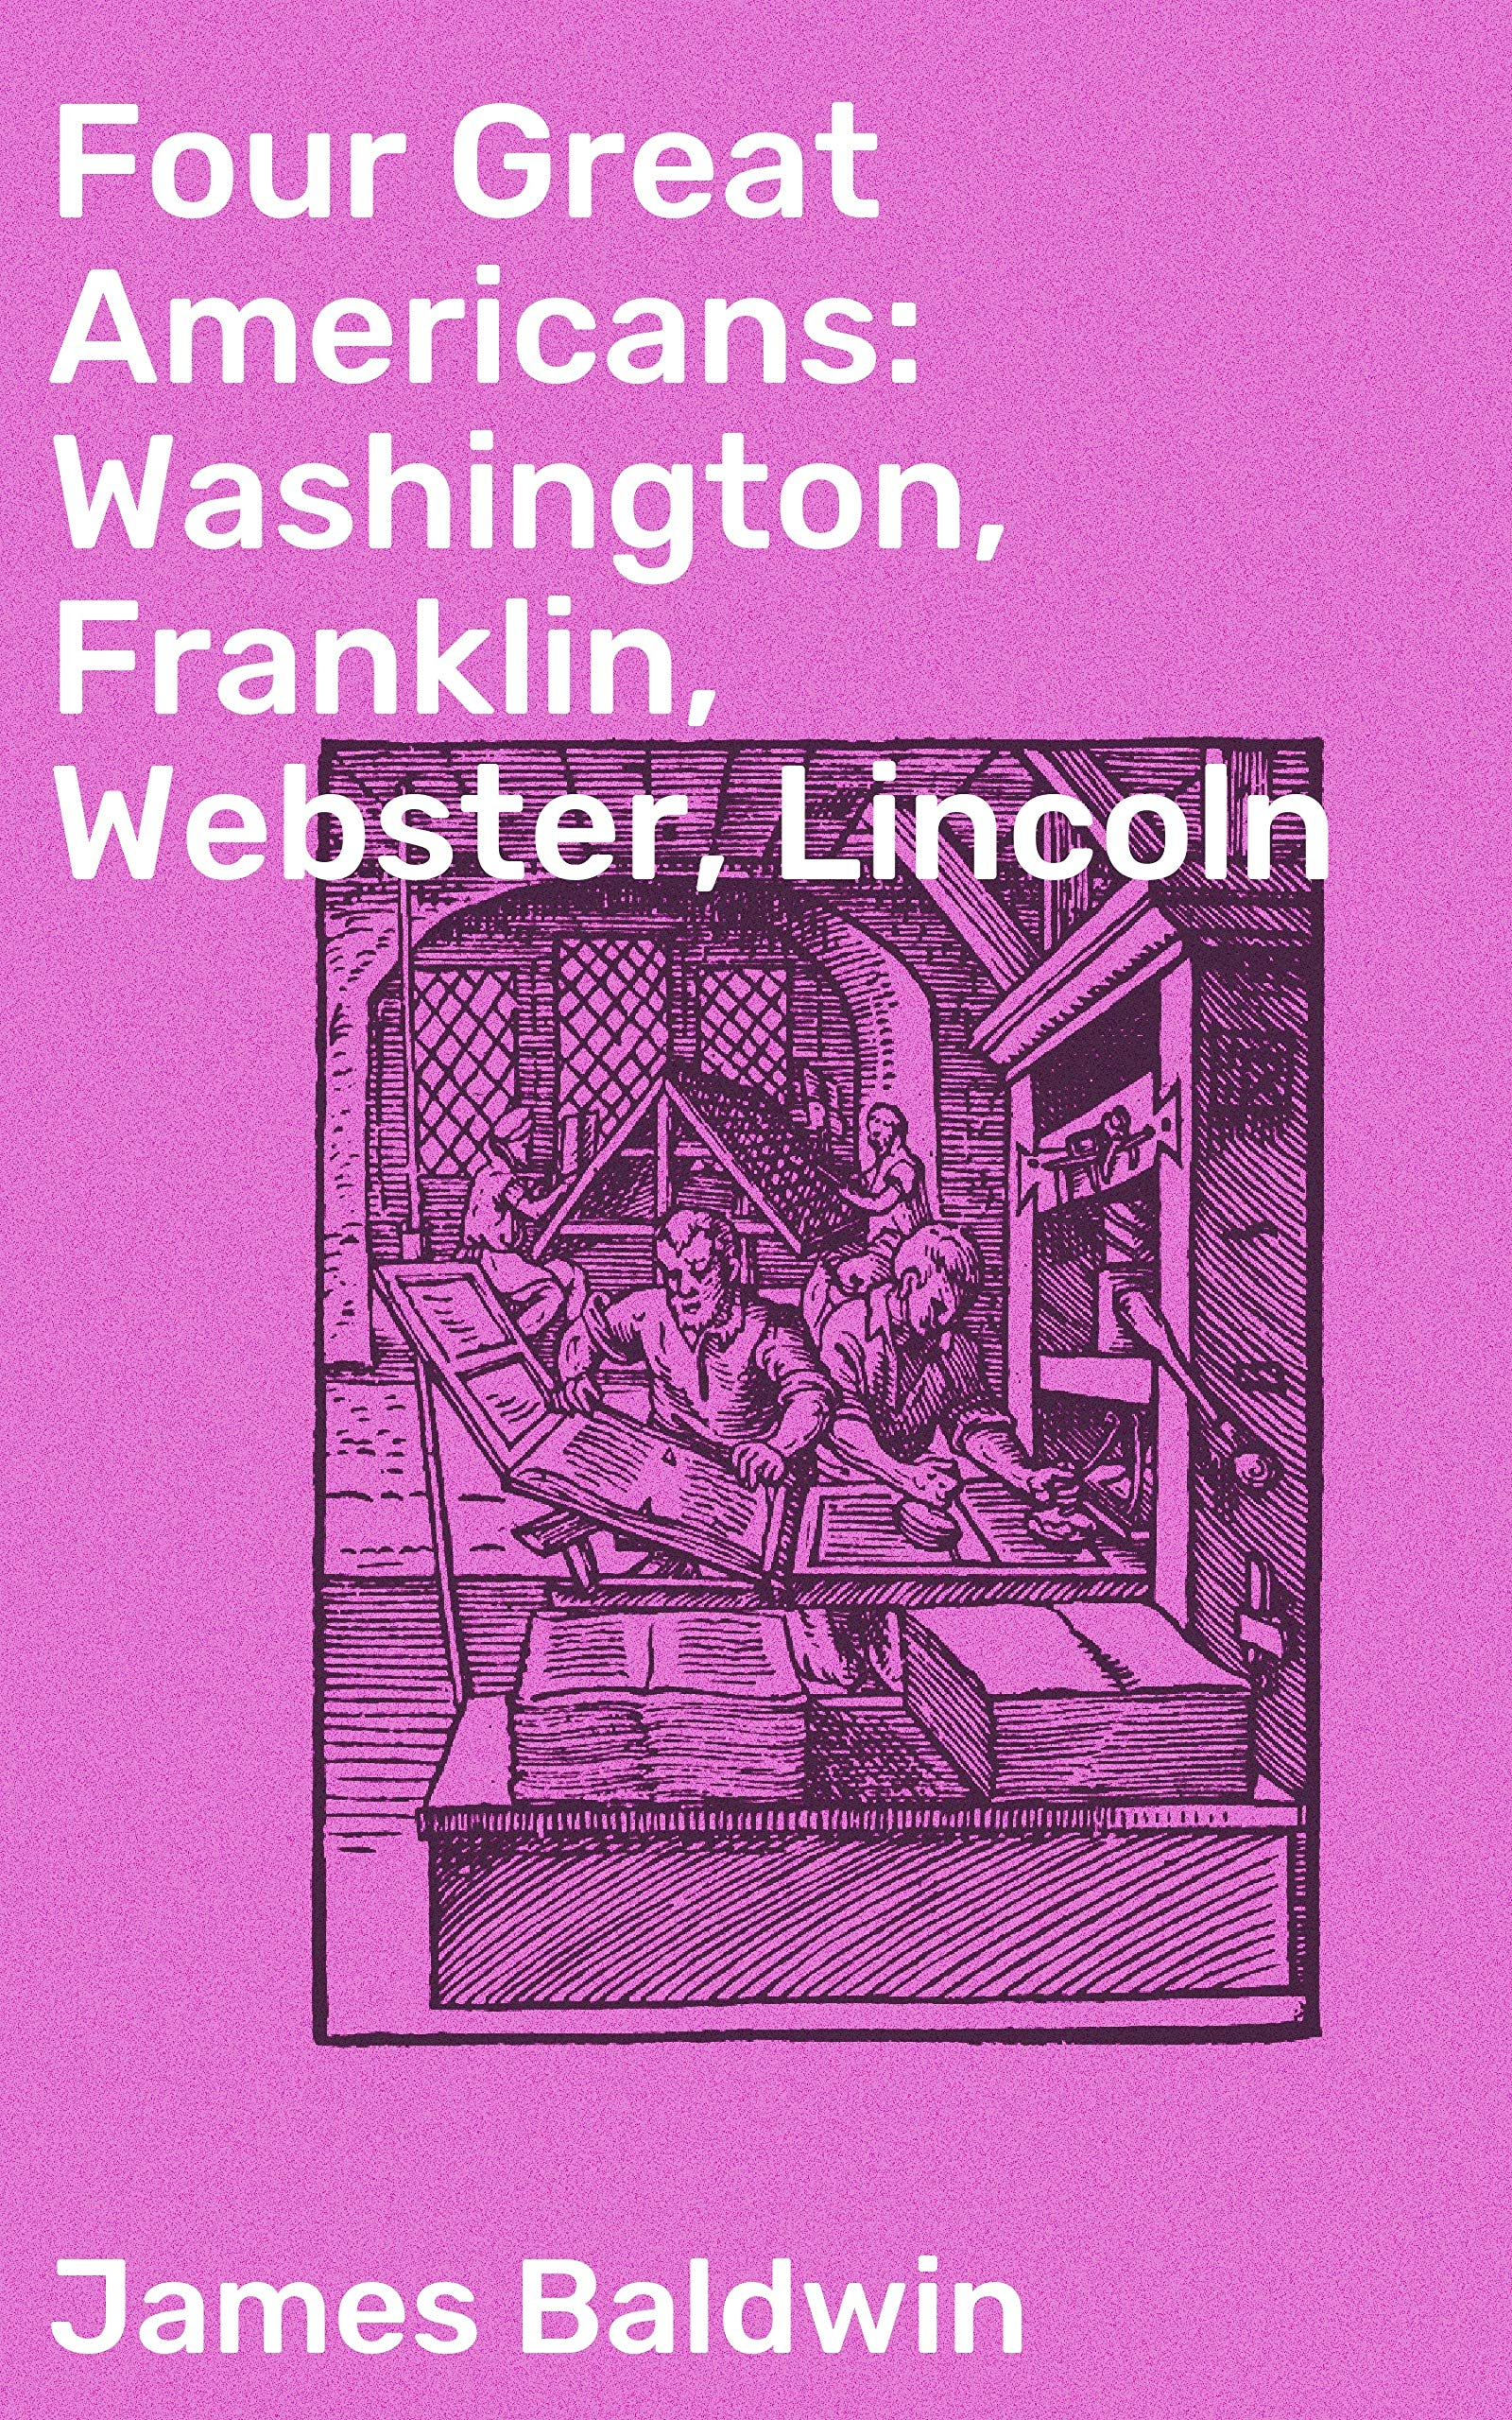 Four Great Americans: Washington, Franklin, Webster, Lincoln: A Book for Young Americans